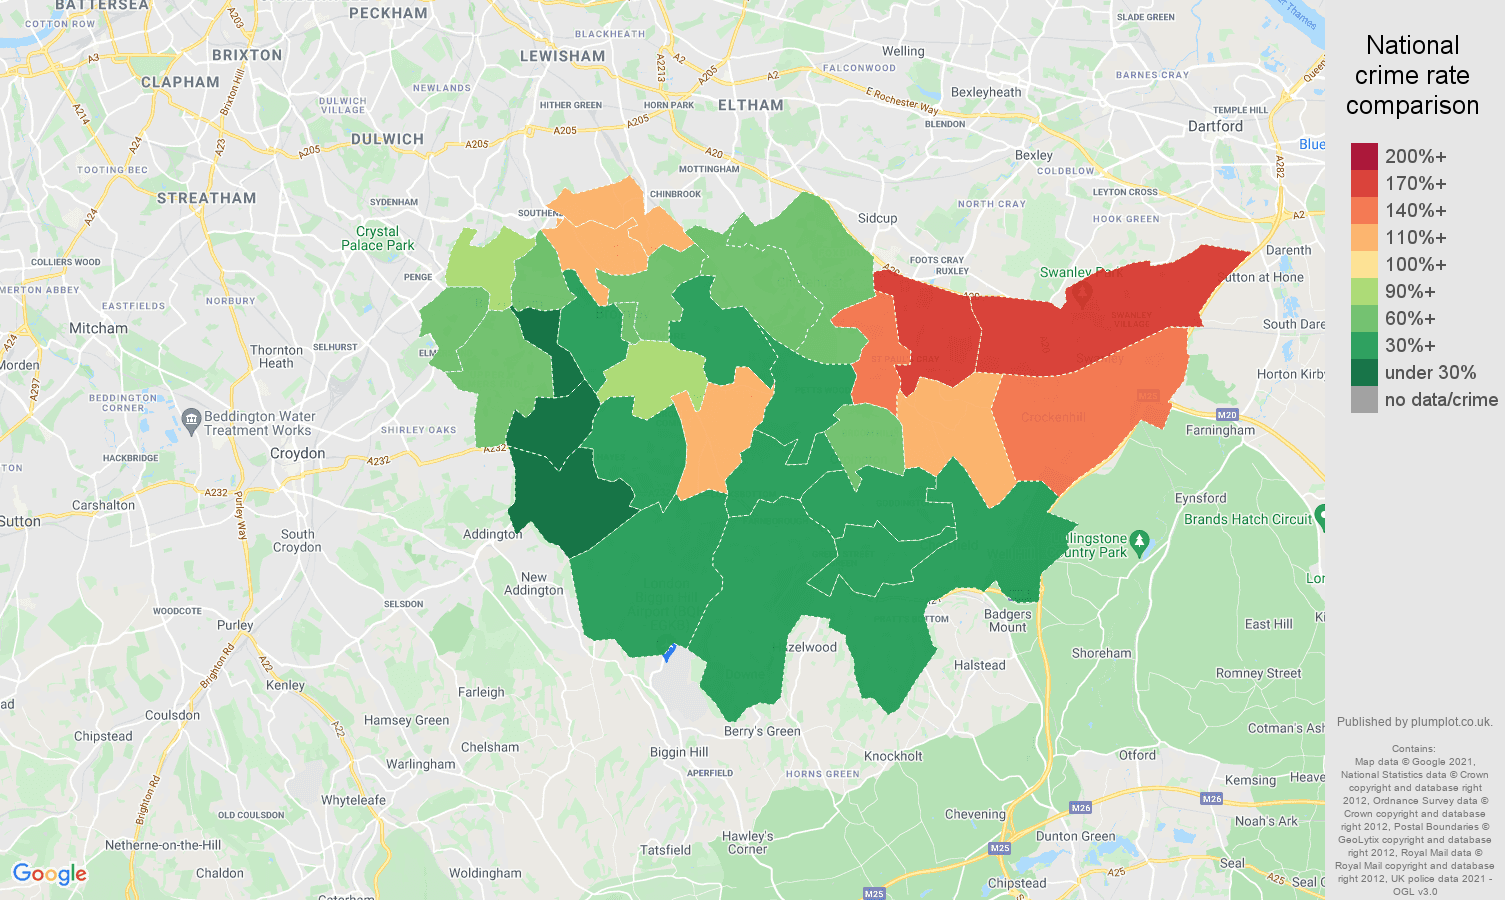 Bromley criminal damage and arson crime rate comparison map